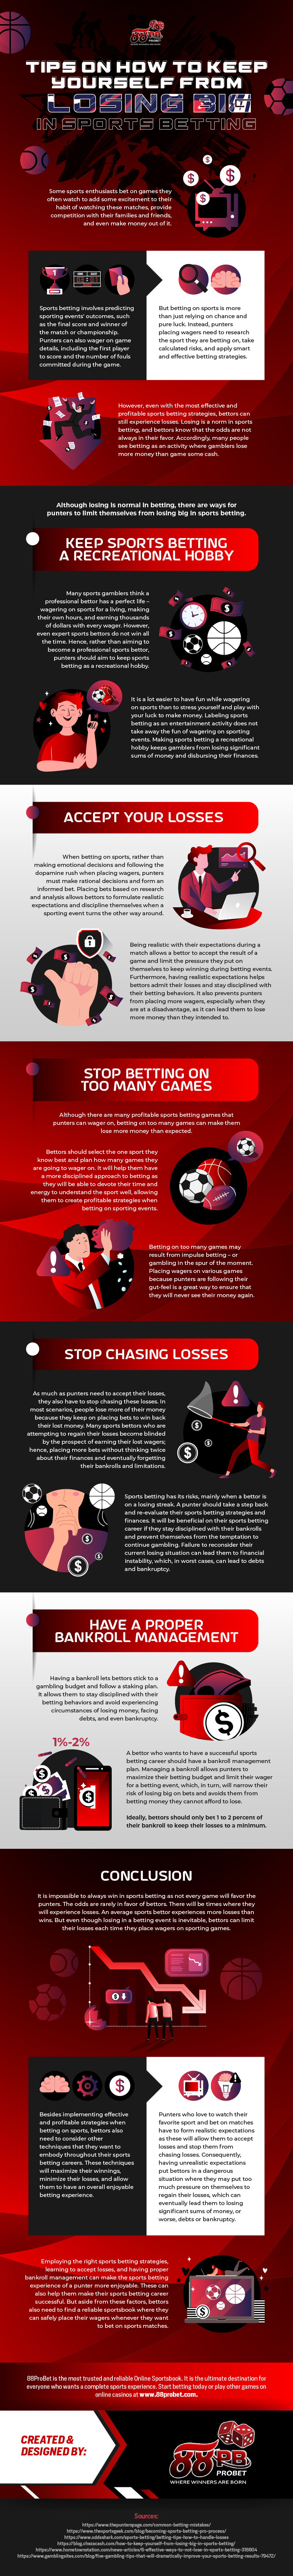 Tips on How to Keep Yourself from Losing Big in Sports Betting